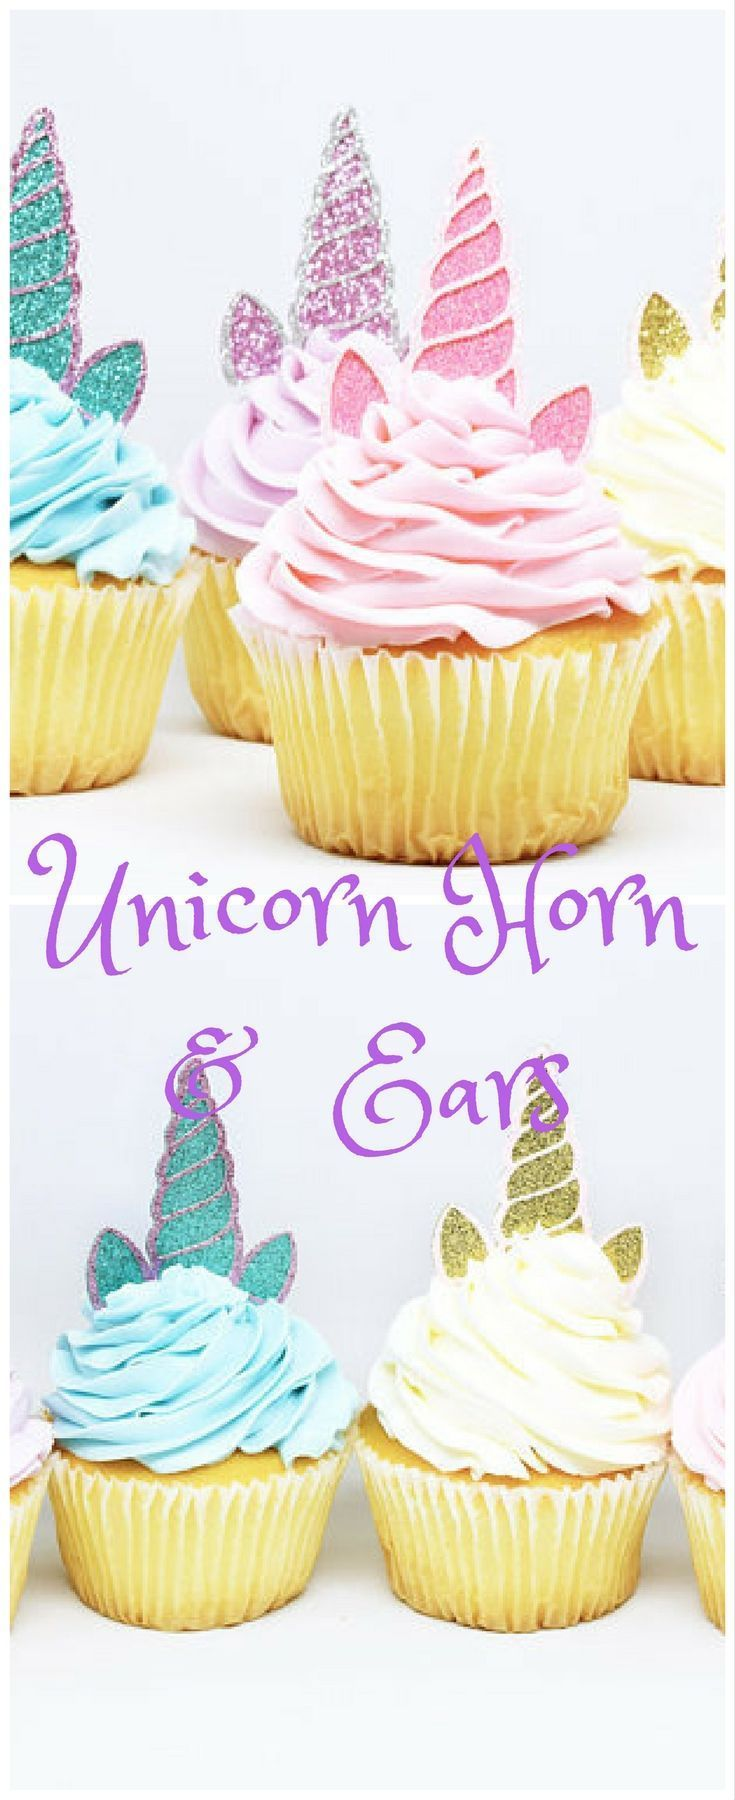 These are perfect! #unicorn #ad #unicorncupcake Unicorn Horn + Ears Cupcake Toppers - Glitter - First Birthday Decor. Unicorn Party Decor. Birthday Party. Bachelorette Party. Unicorn Decor